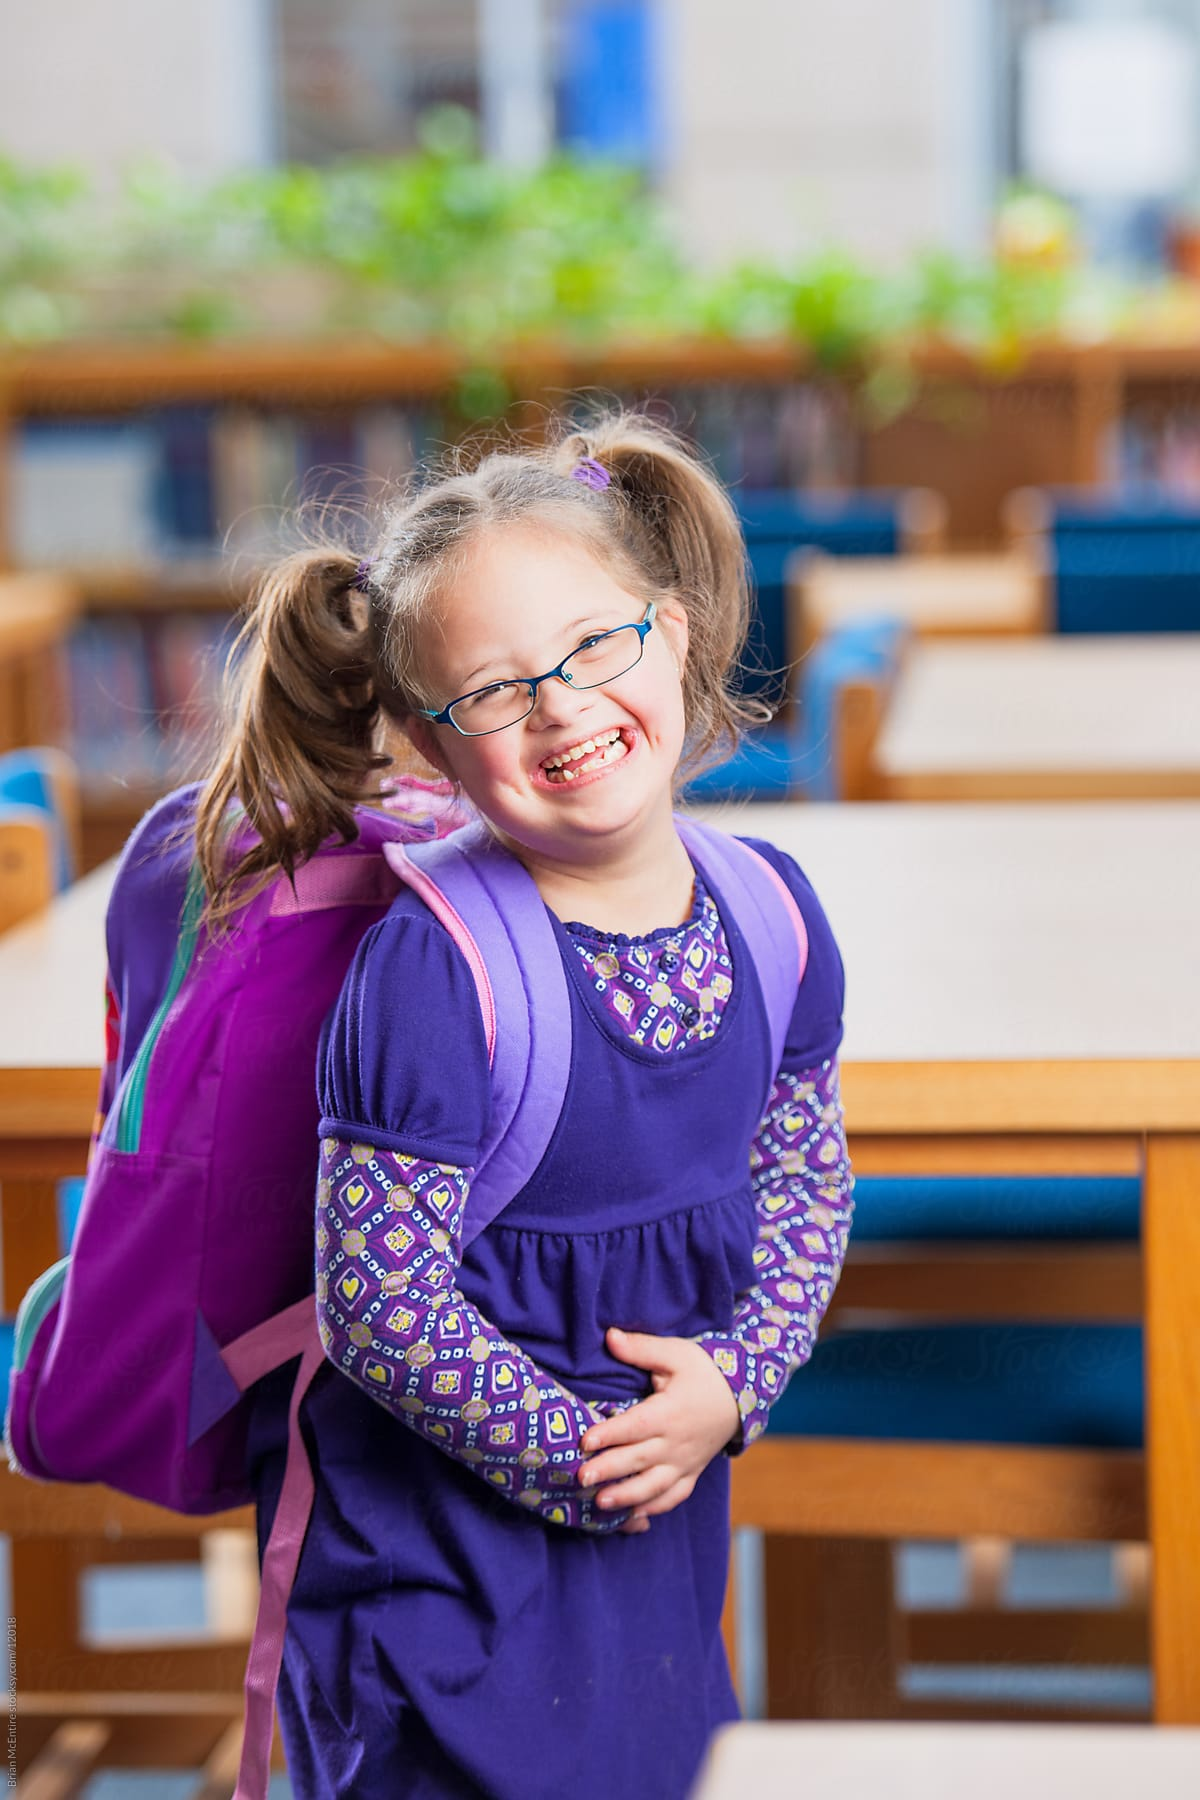 Giggly Second Grade Girl With Down Syndrome In School Library by Brian McEntire